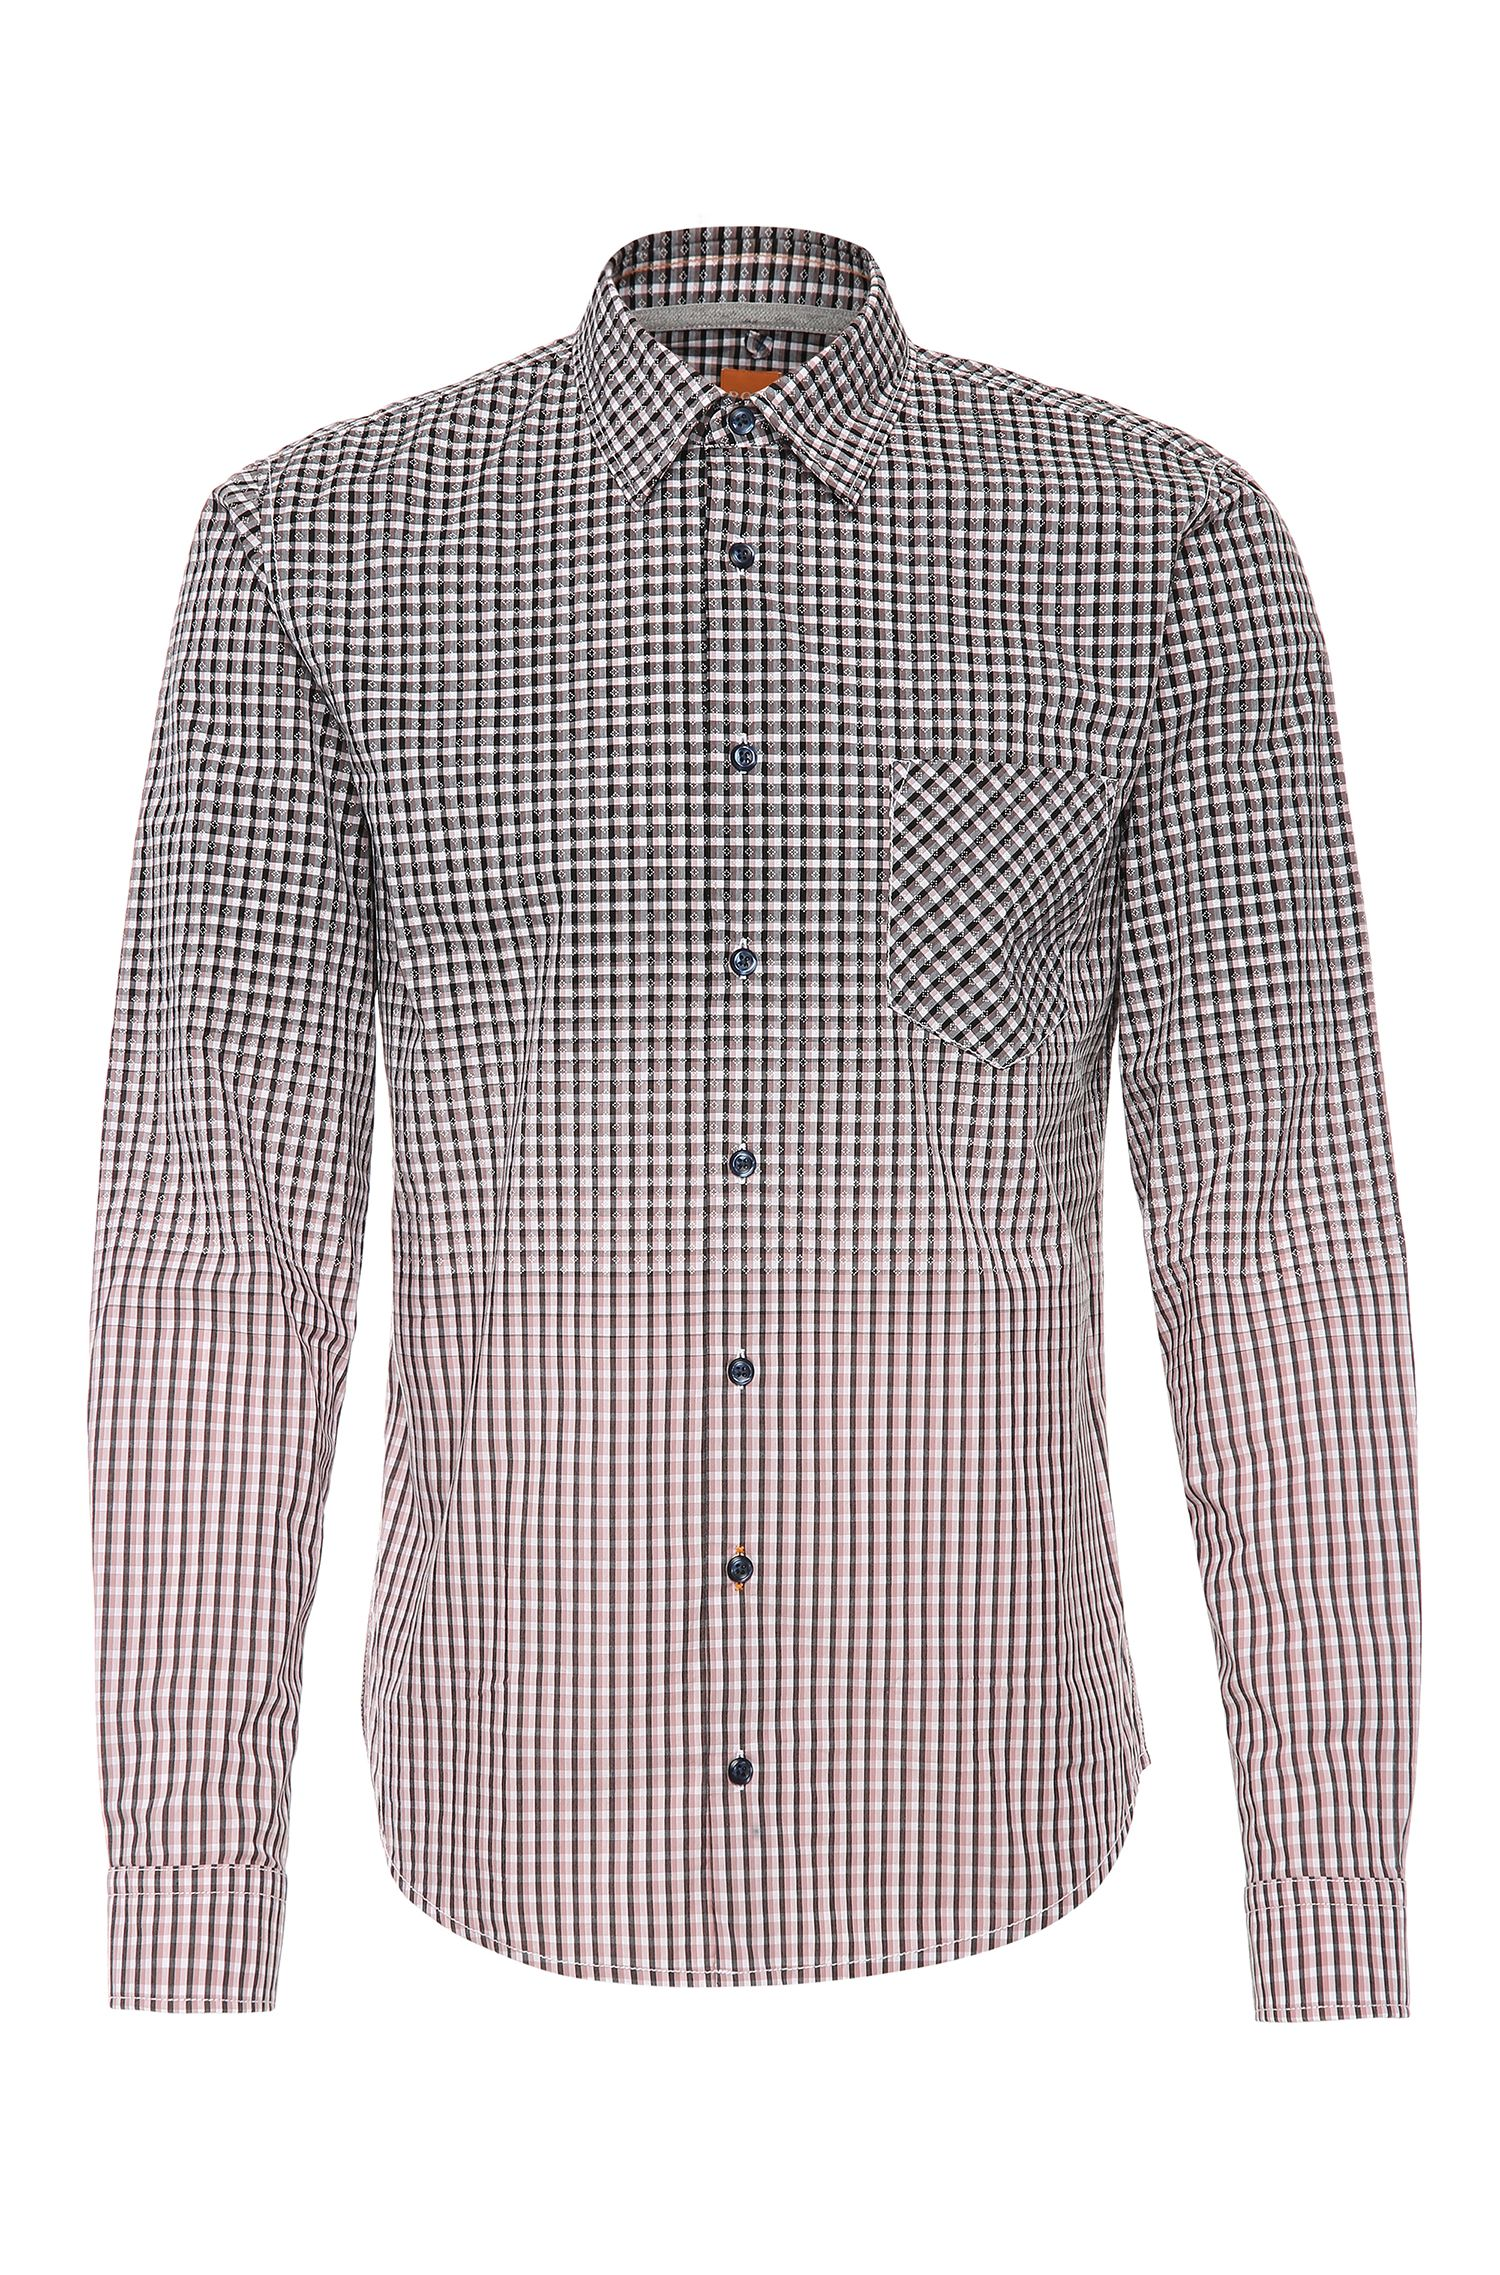 Cotton Ombre Printed Button Down Shirt, Slim Fit   EnameE